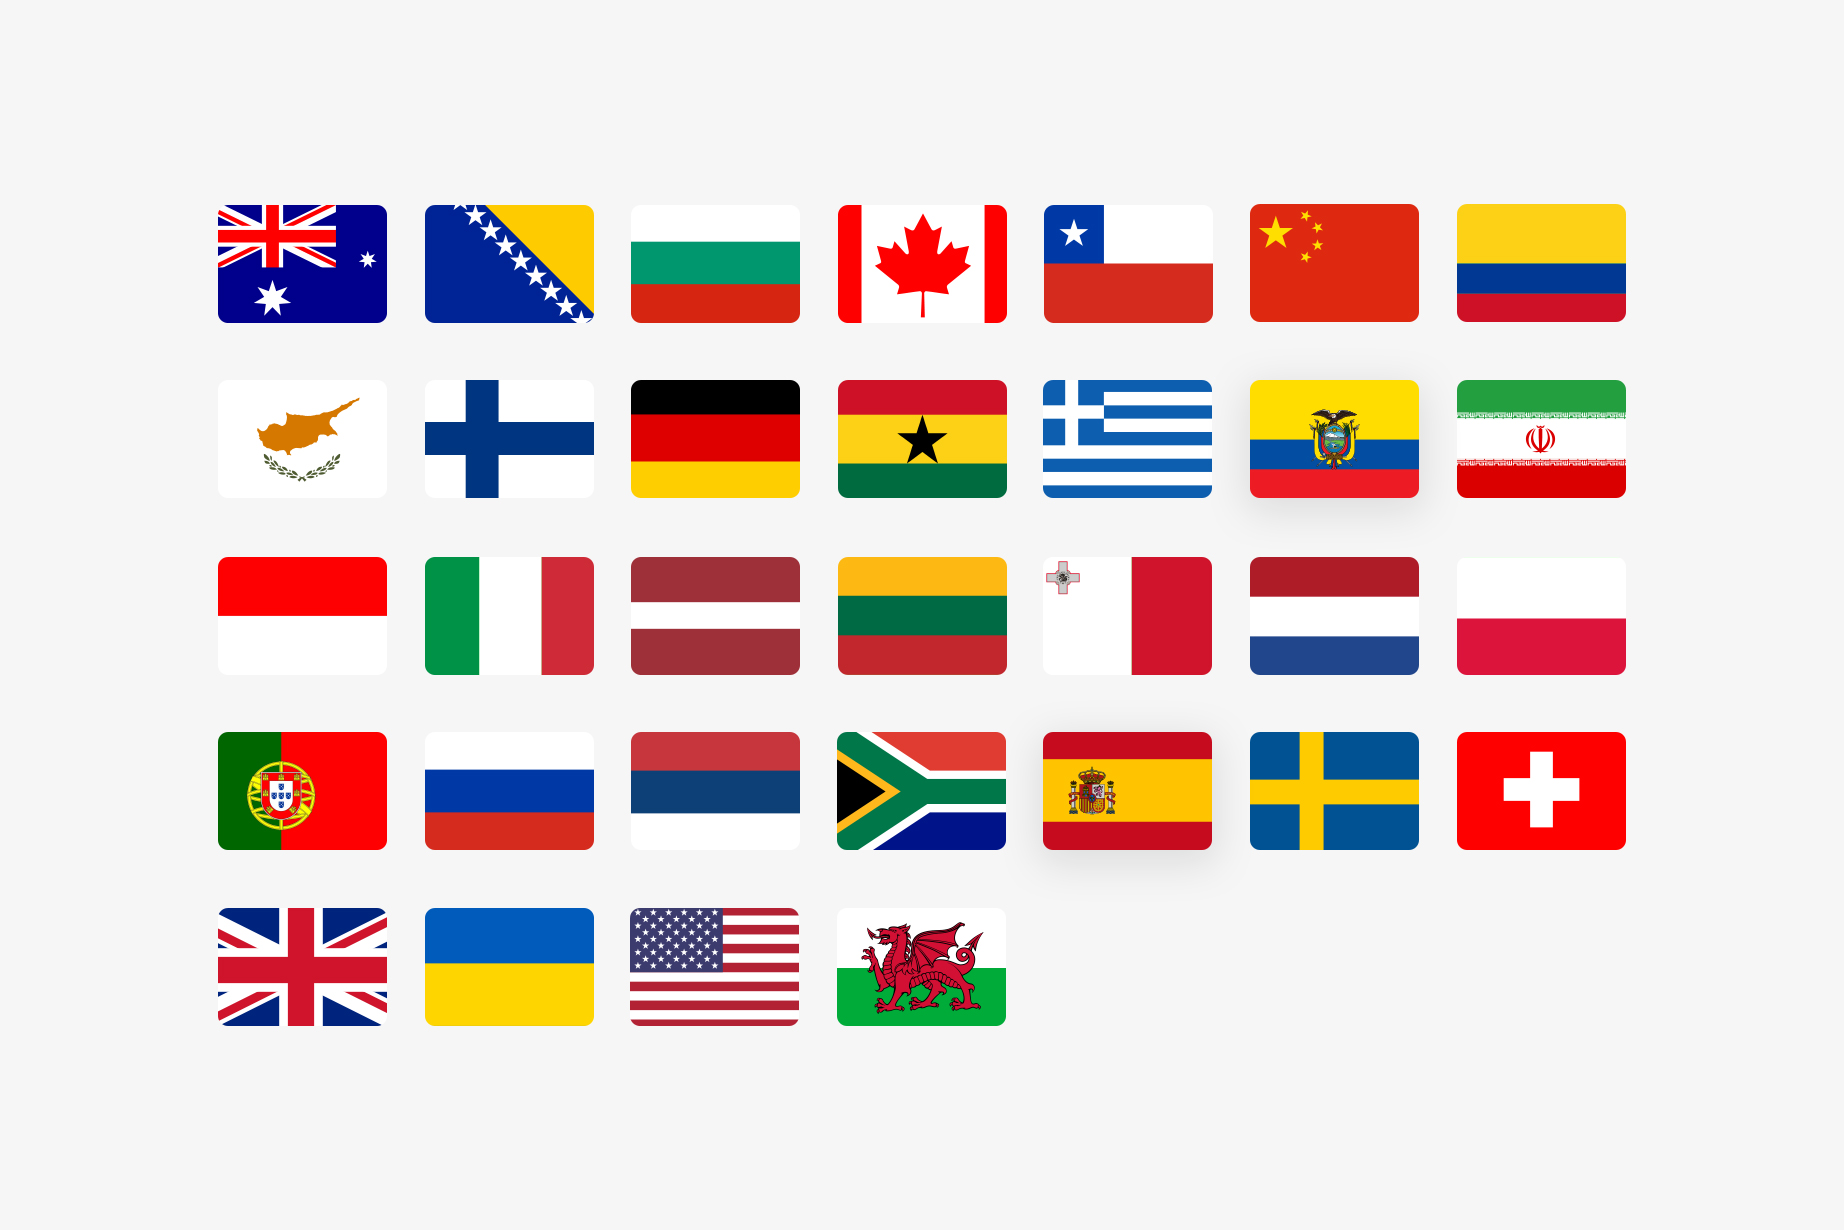 Trustly Careers - Country flags